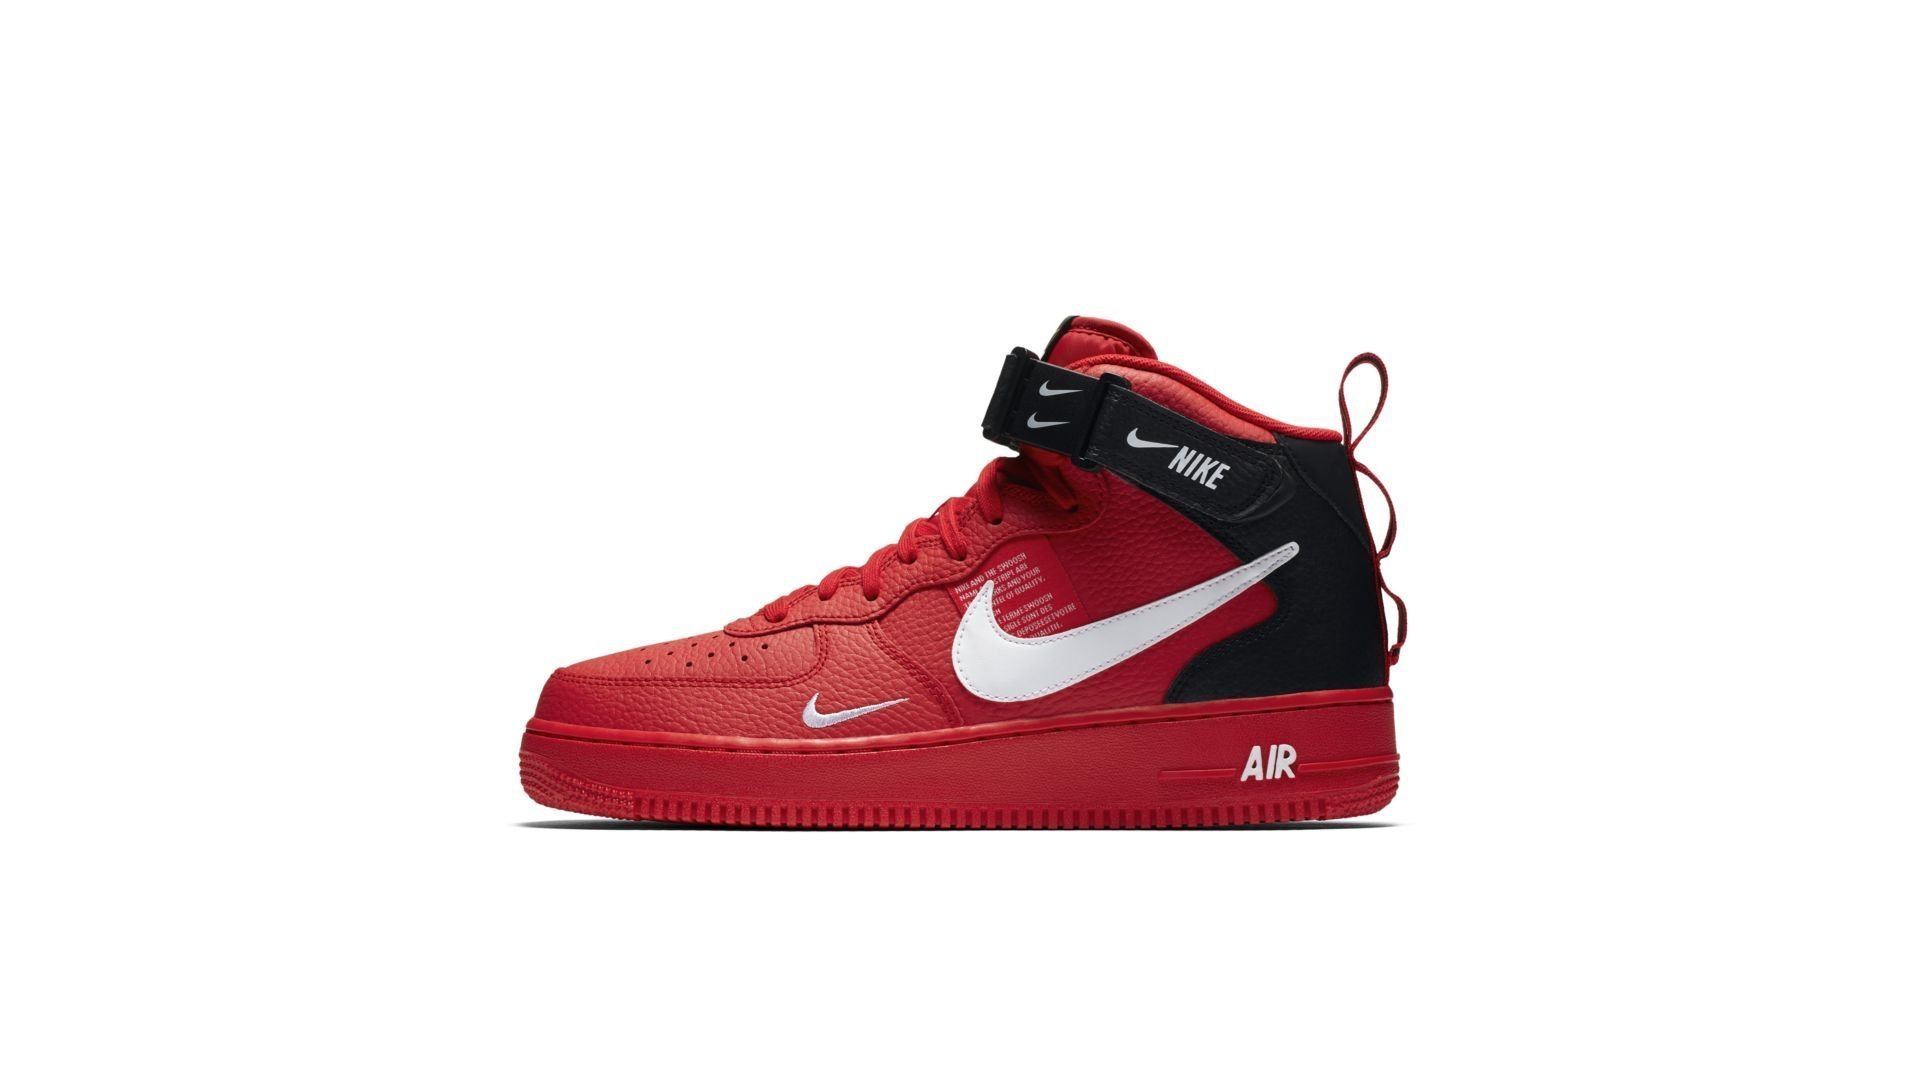 Nike Air Force 1 Mid '07 LV8 Utility 'Red' (804609-605)